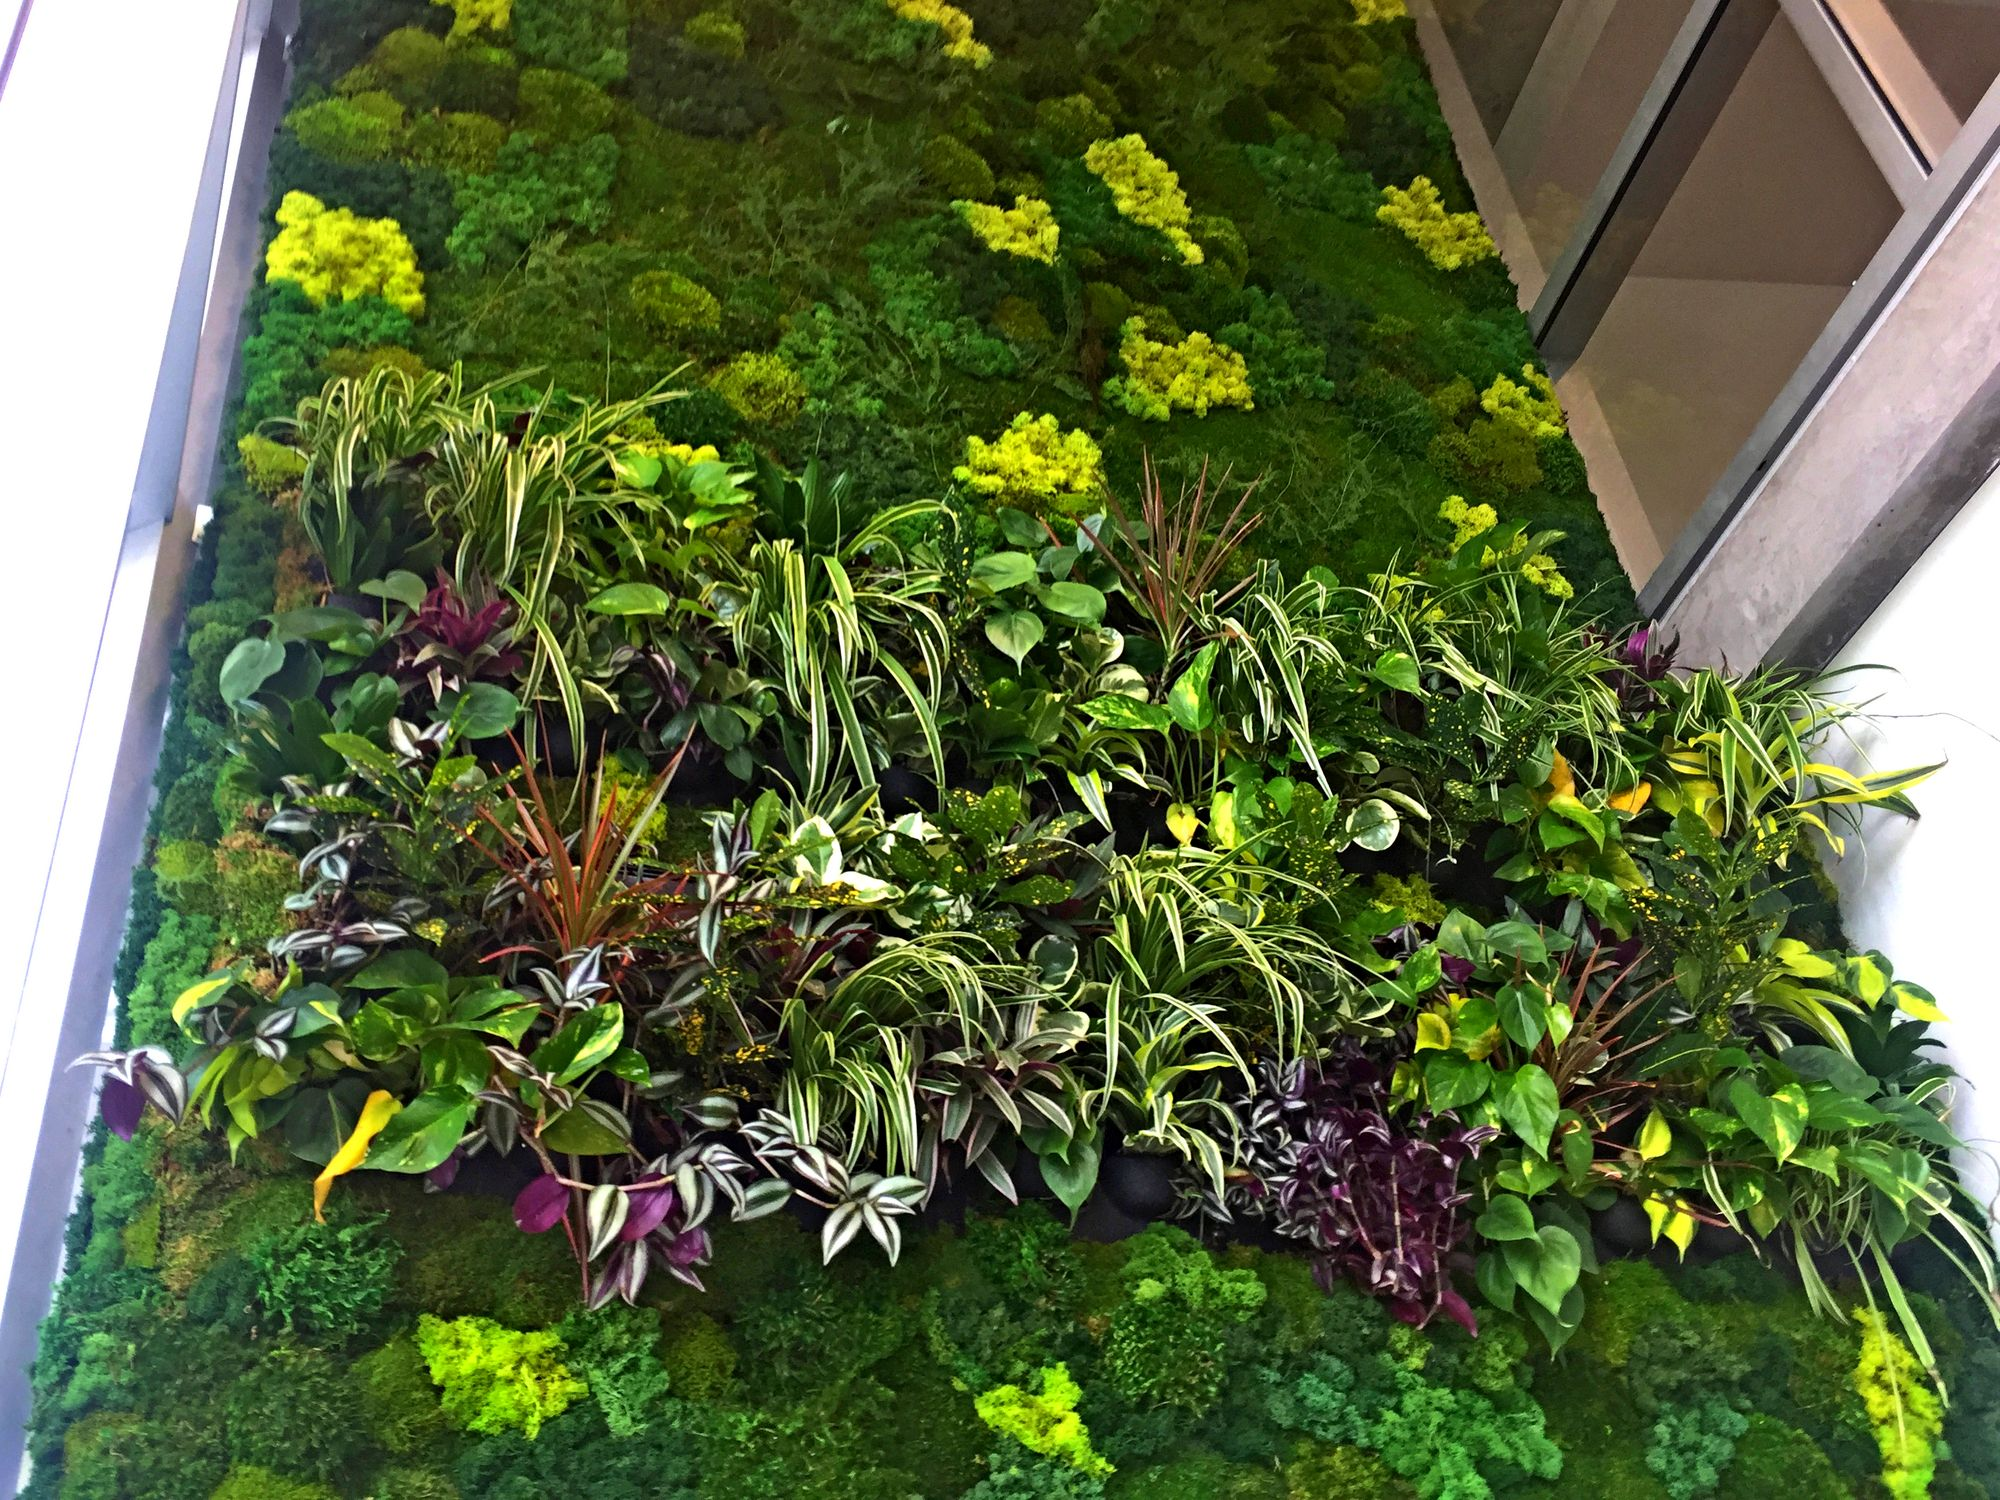 Both A Preserved Moss Wall And Tropical Live Integrated To Create An Organic Piece Of Art